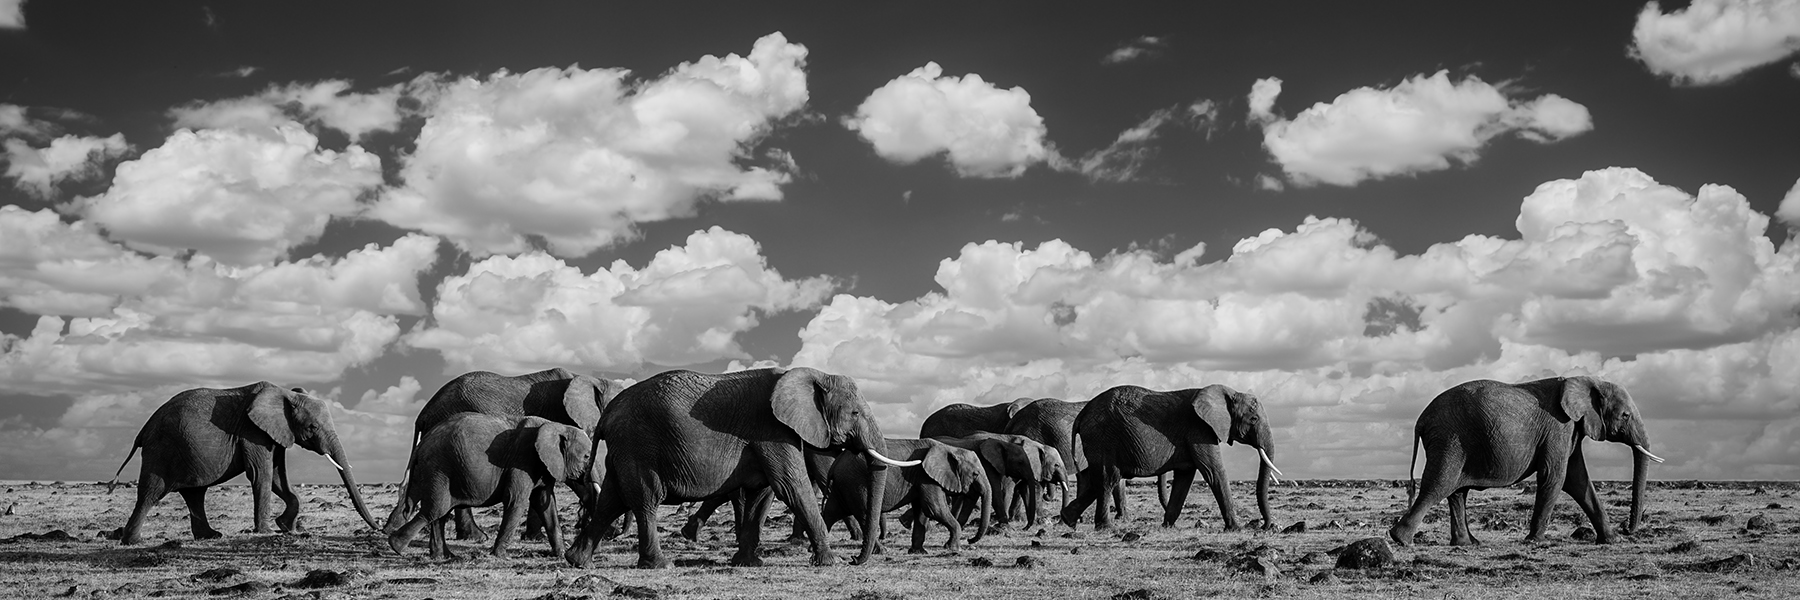 A Content Writer's Journey to Wildlife Conservation